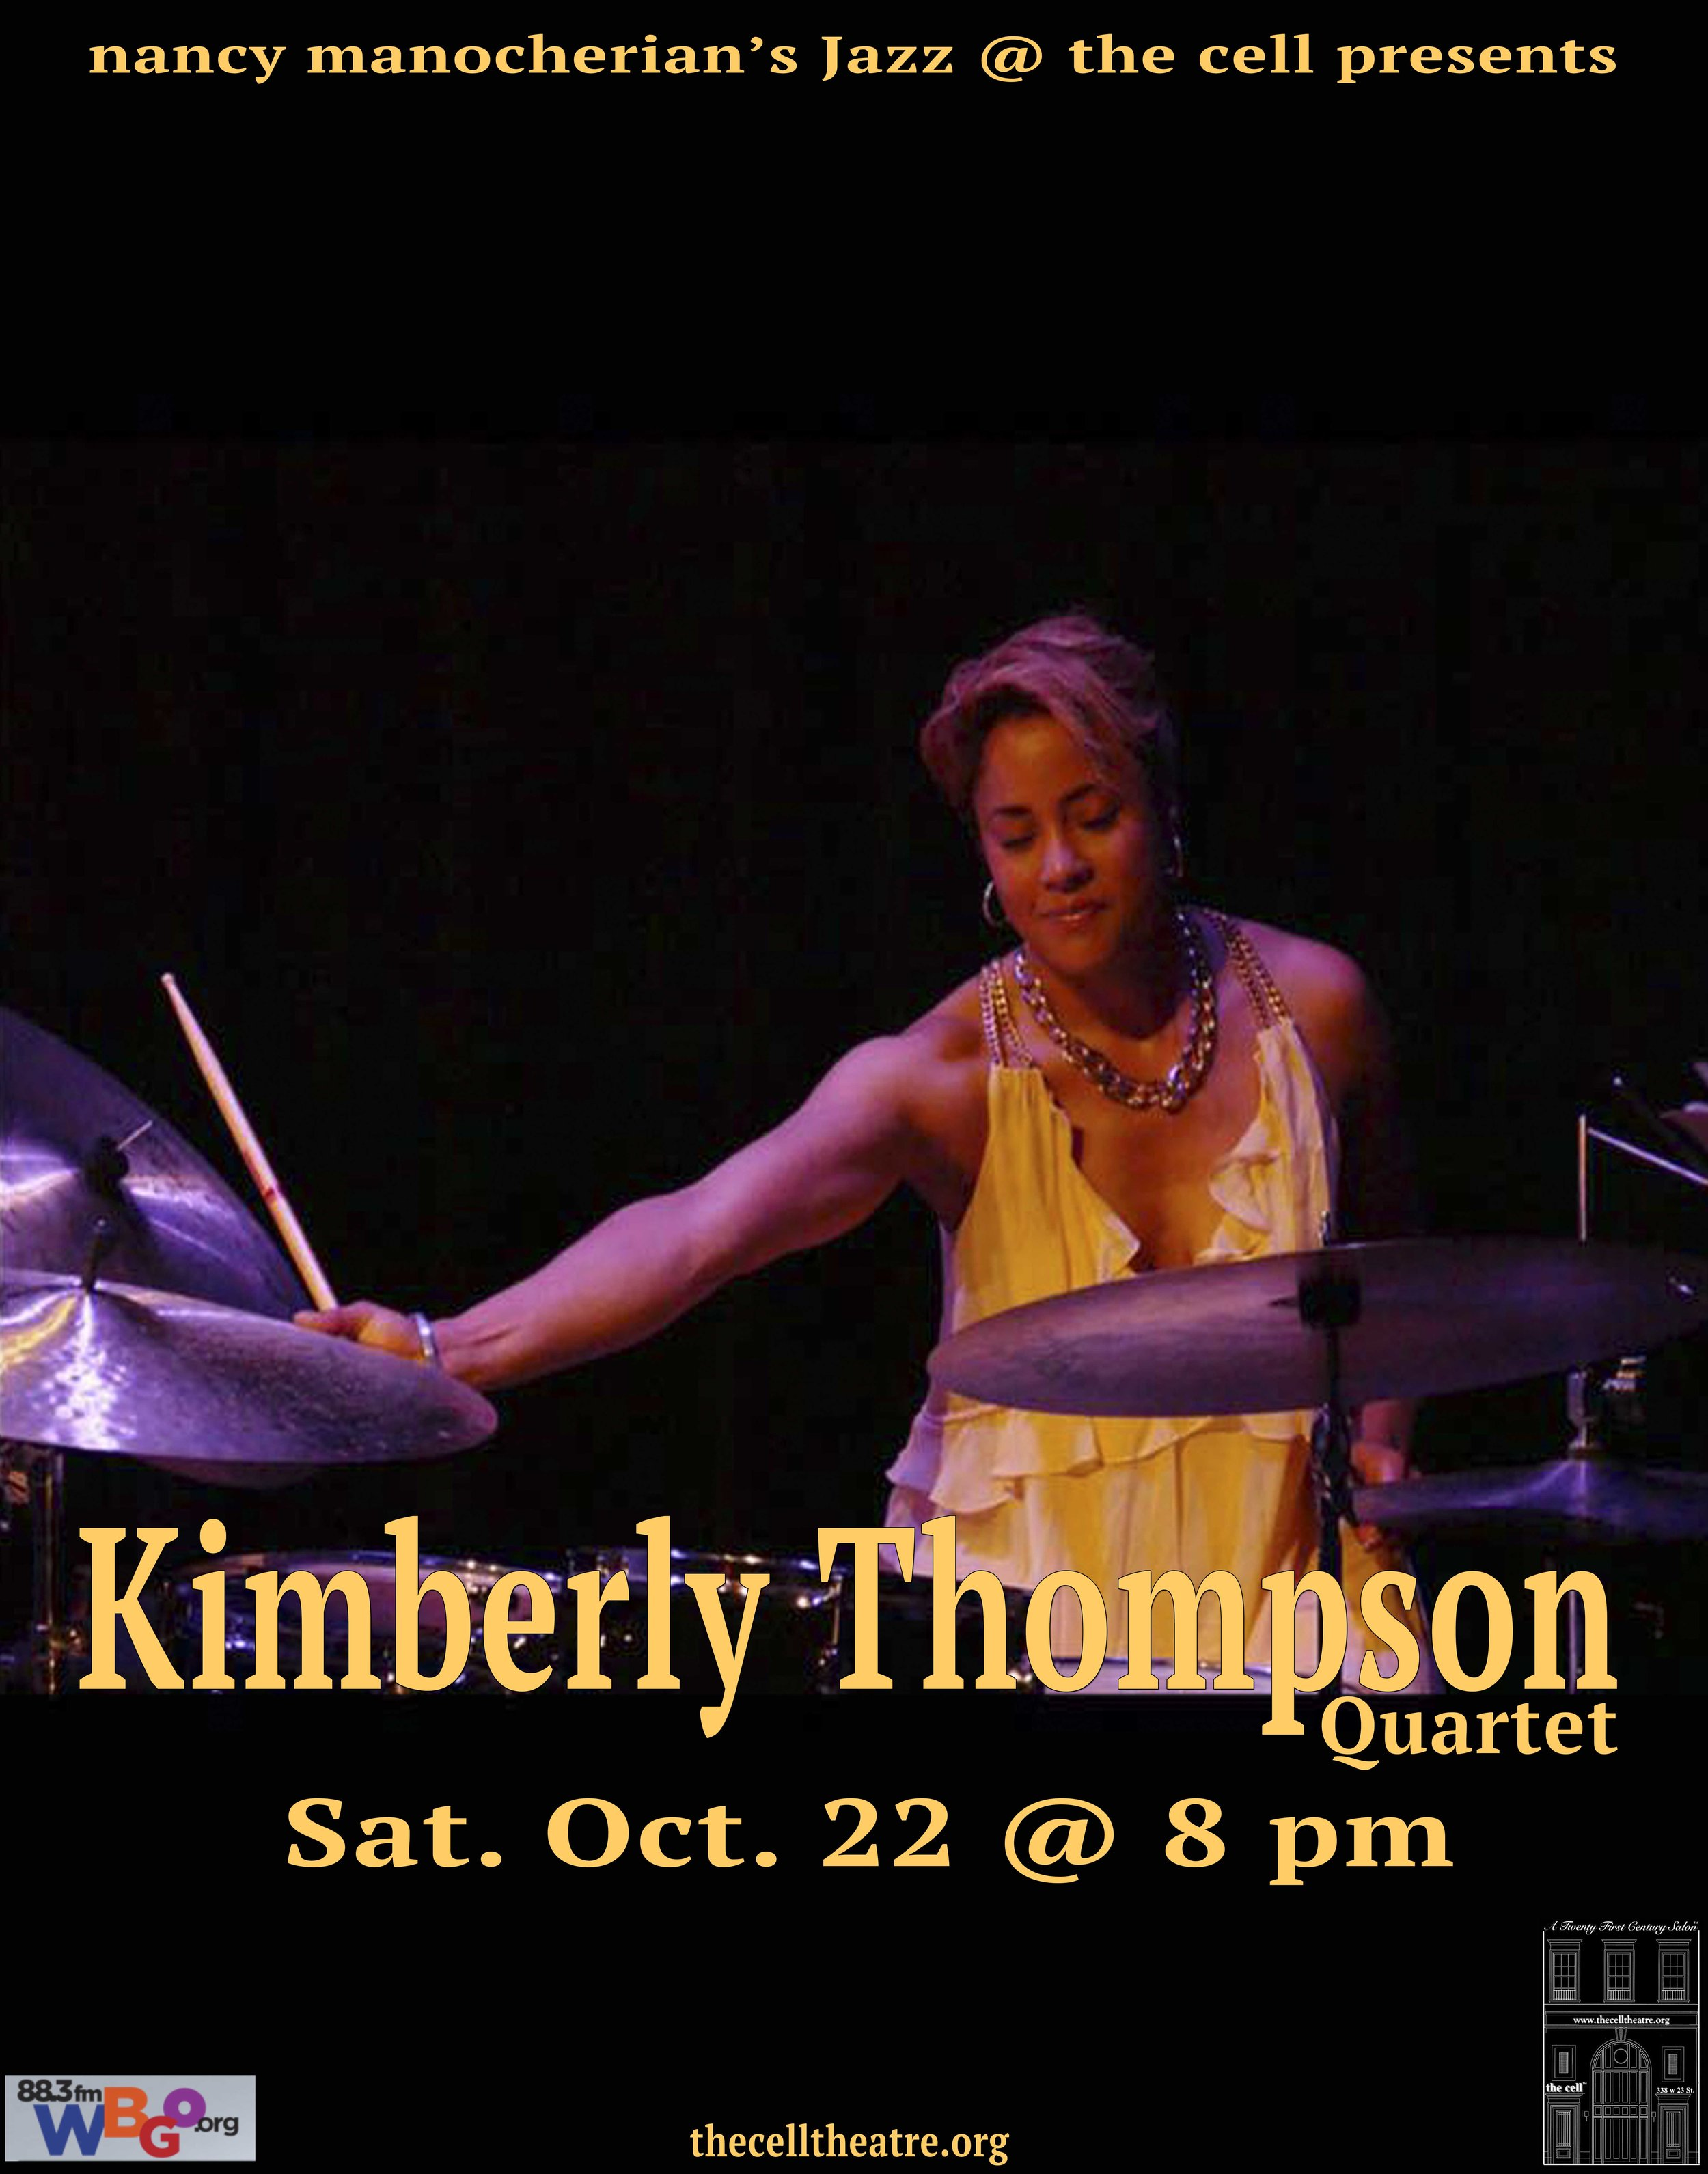 """Kimberly Thompson - Born in Los Angeles, CA; raised in St. Louis, MO., is a three time Grammy winner and noted drummer whose success has traversed from performing all over the universe with top pop & jazz icons as Beyoncé Knowles & fusion guitarist Mike Stern. A young television composer, as well as an actress, and hosting house drummer for television show """"Late Night w/Seth Meyers first season, writer of opening & closing theme song on the legendary TV network NBC.  Kimberly is the President of female founded record label, producing 6 records & 200 films, on label ©KTMUSICPRODUCTIONS, a Harlem, NY based production company committed to film, history, live performances, education, compositions, & lyrical songwriting.  Her latest Jazz CD release, Treasures Abound (A Tribute to the Jazz Greats) features her dynamic drumming & arranging featuring some of jazz & Walt Disneys timeless musical selections recorded by jazz giants like Miles Davis, Bill Evans, & Thelonious Monk; showcasing modern themed classical etudes & jazz original songs written & performed with her jazz quartet."""